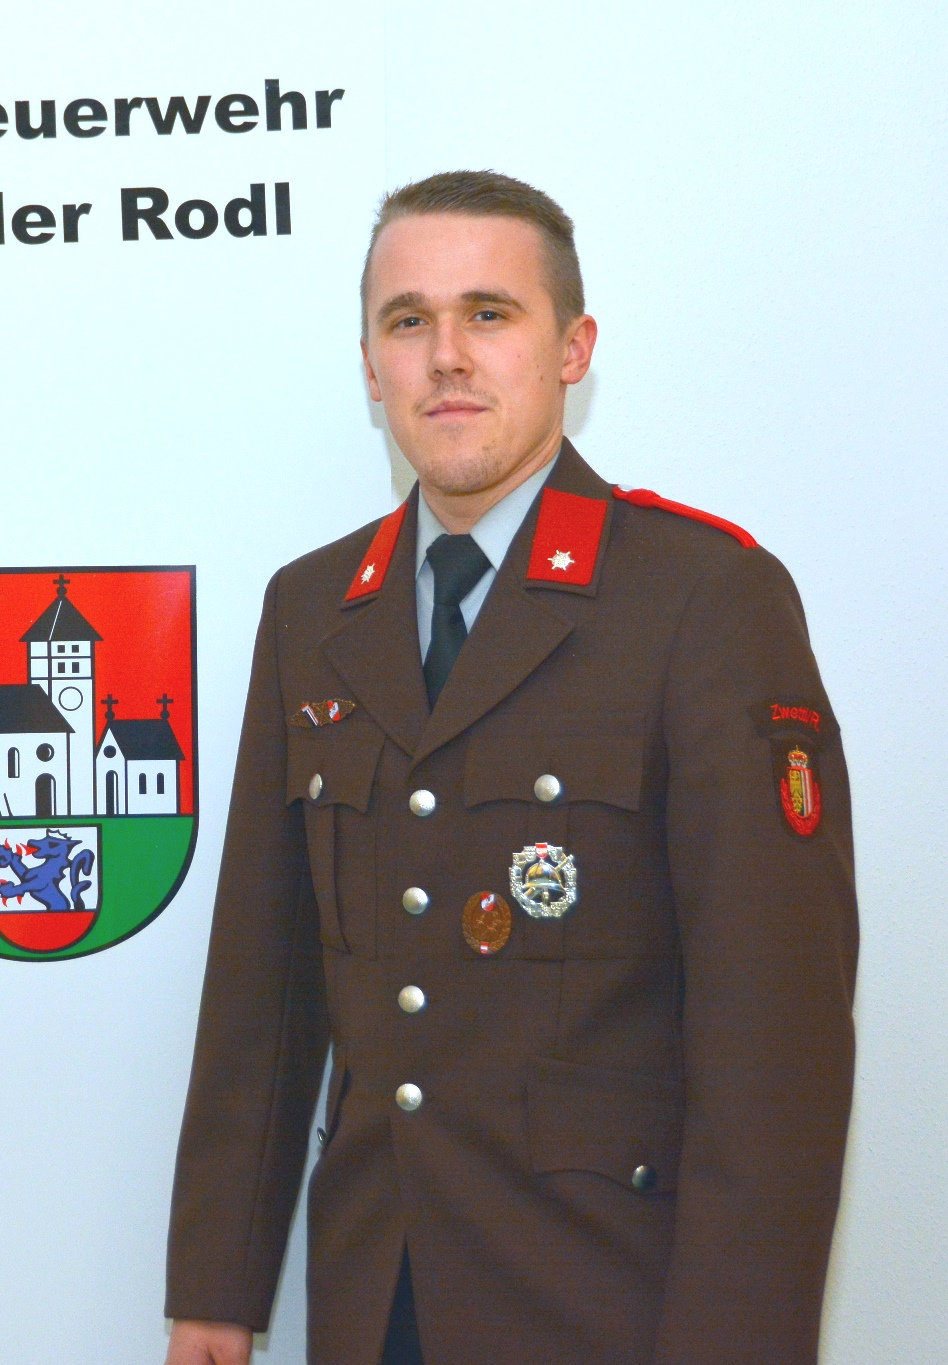 Dominik Enzenhofer